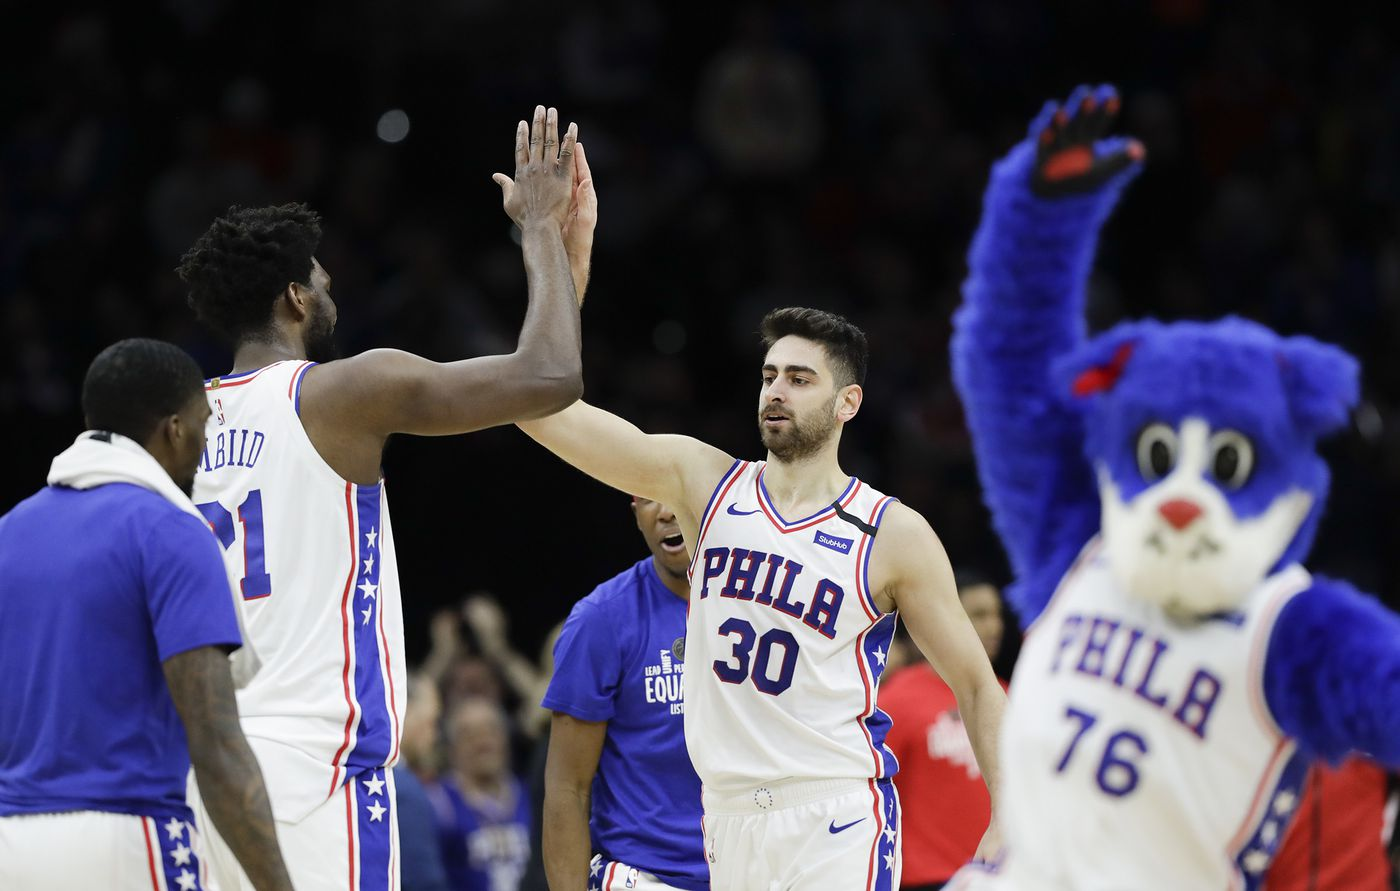 Sixers guard Furkan Korkmaz high-fives teammate center Joel Embiid after Kormaz dunked the basketball against the Chicago Bulls on Sunday, February 9, 2020 in Philadelphia.